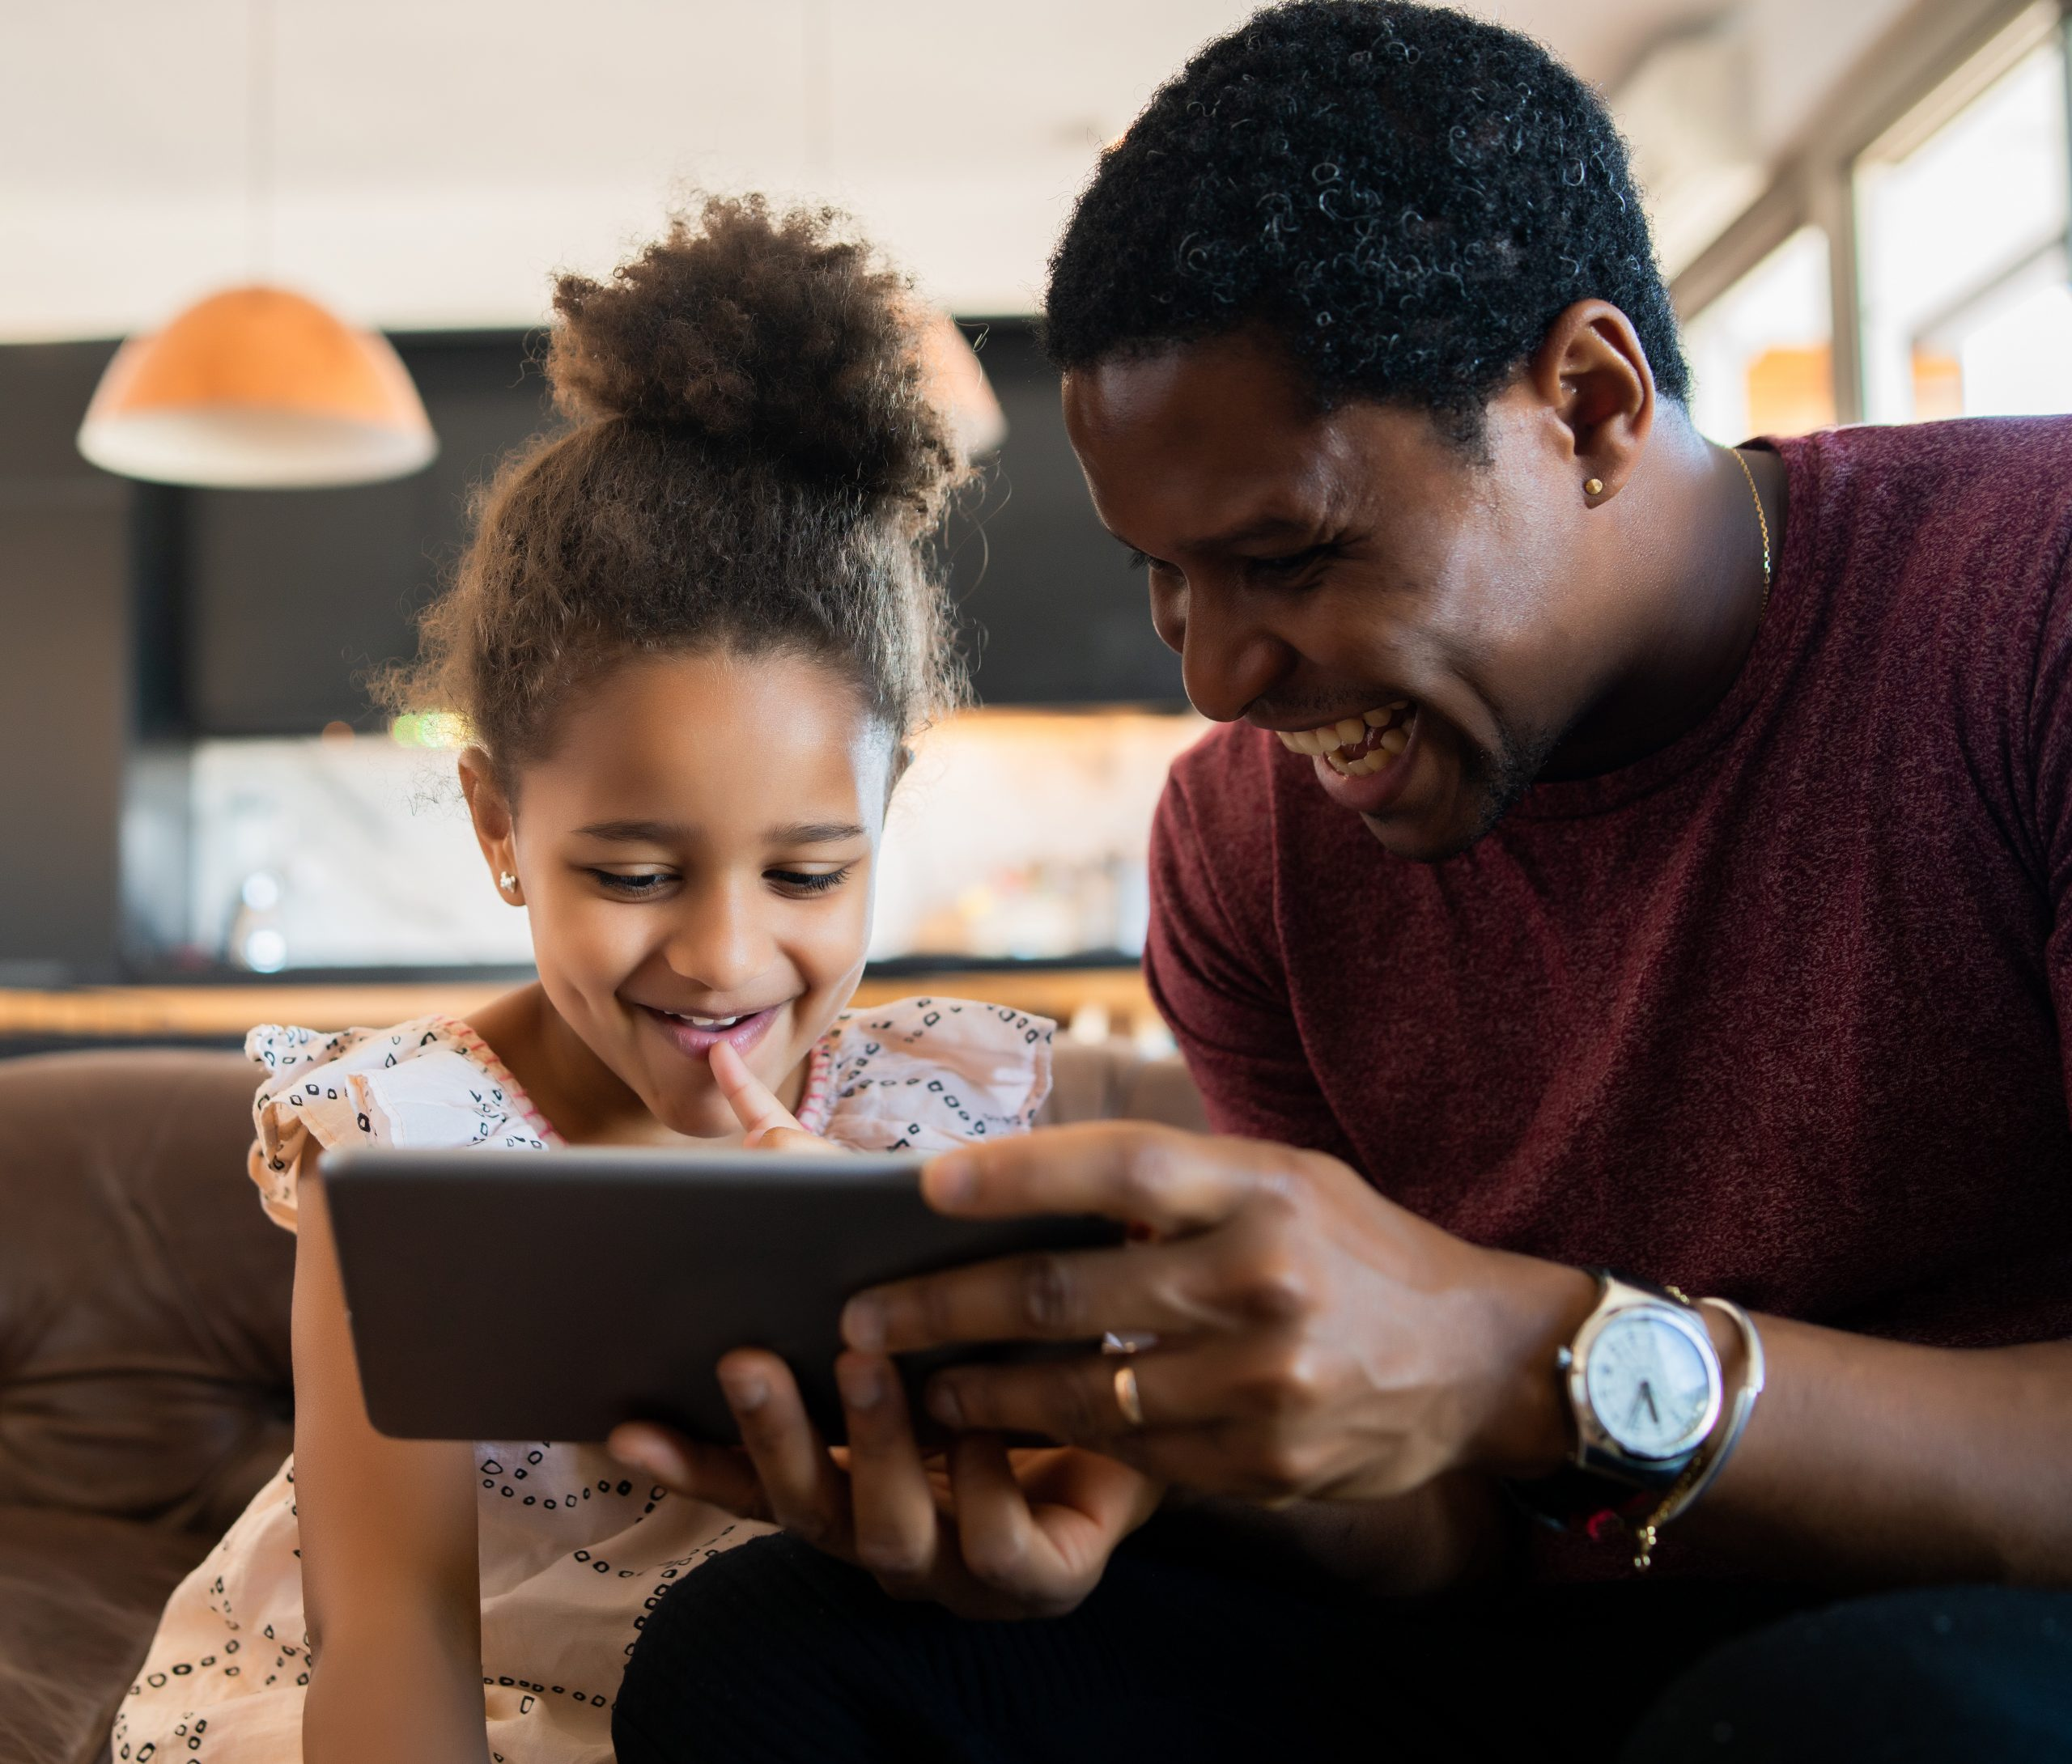 Father and daughter smiling and looking at device